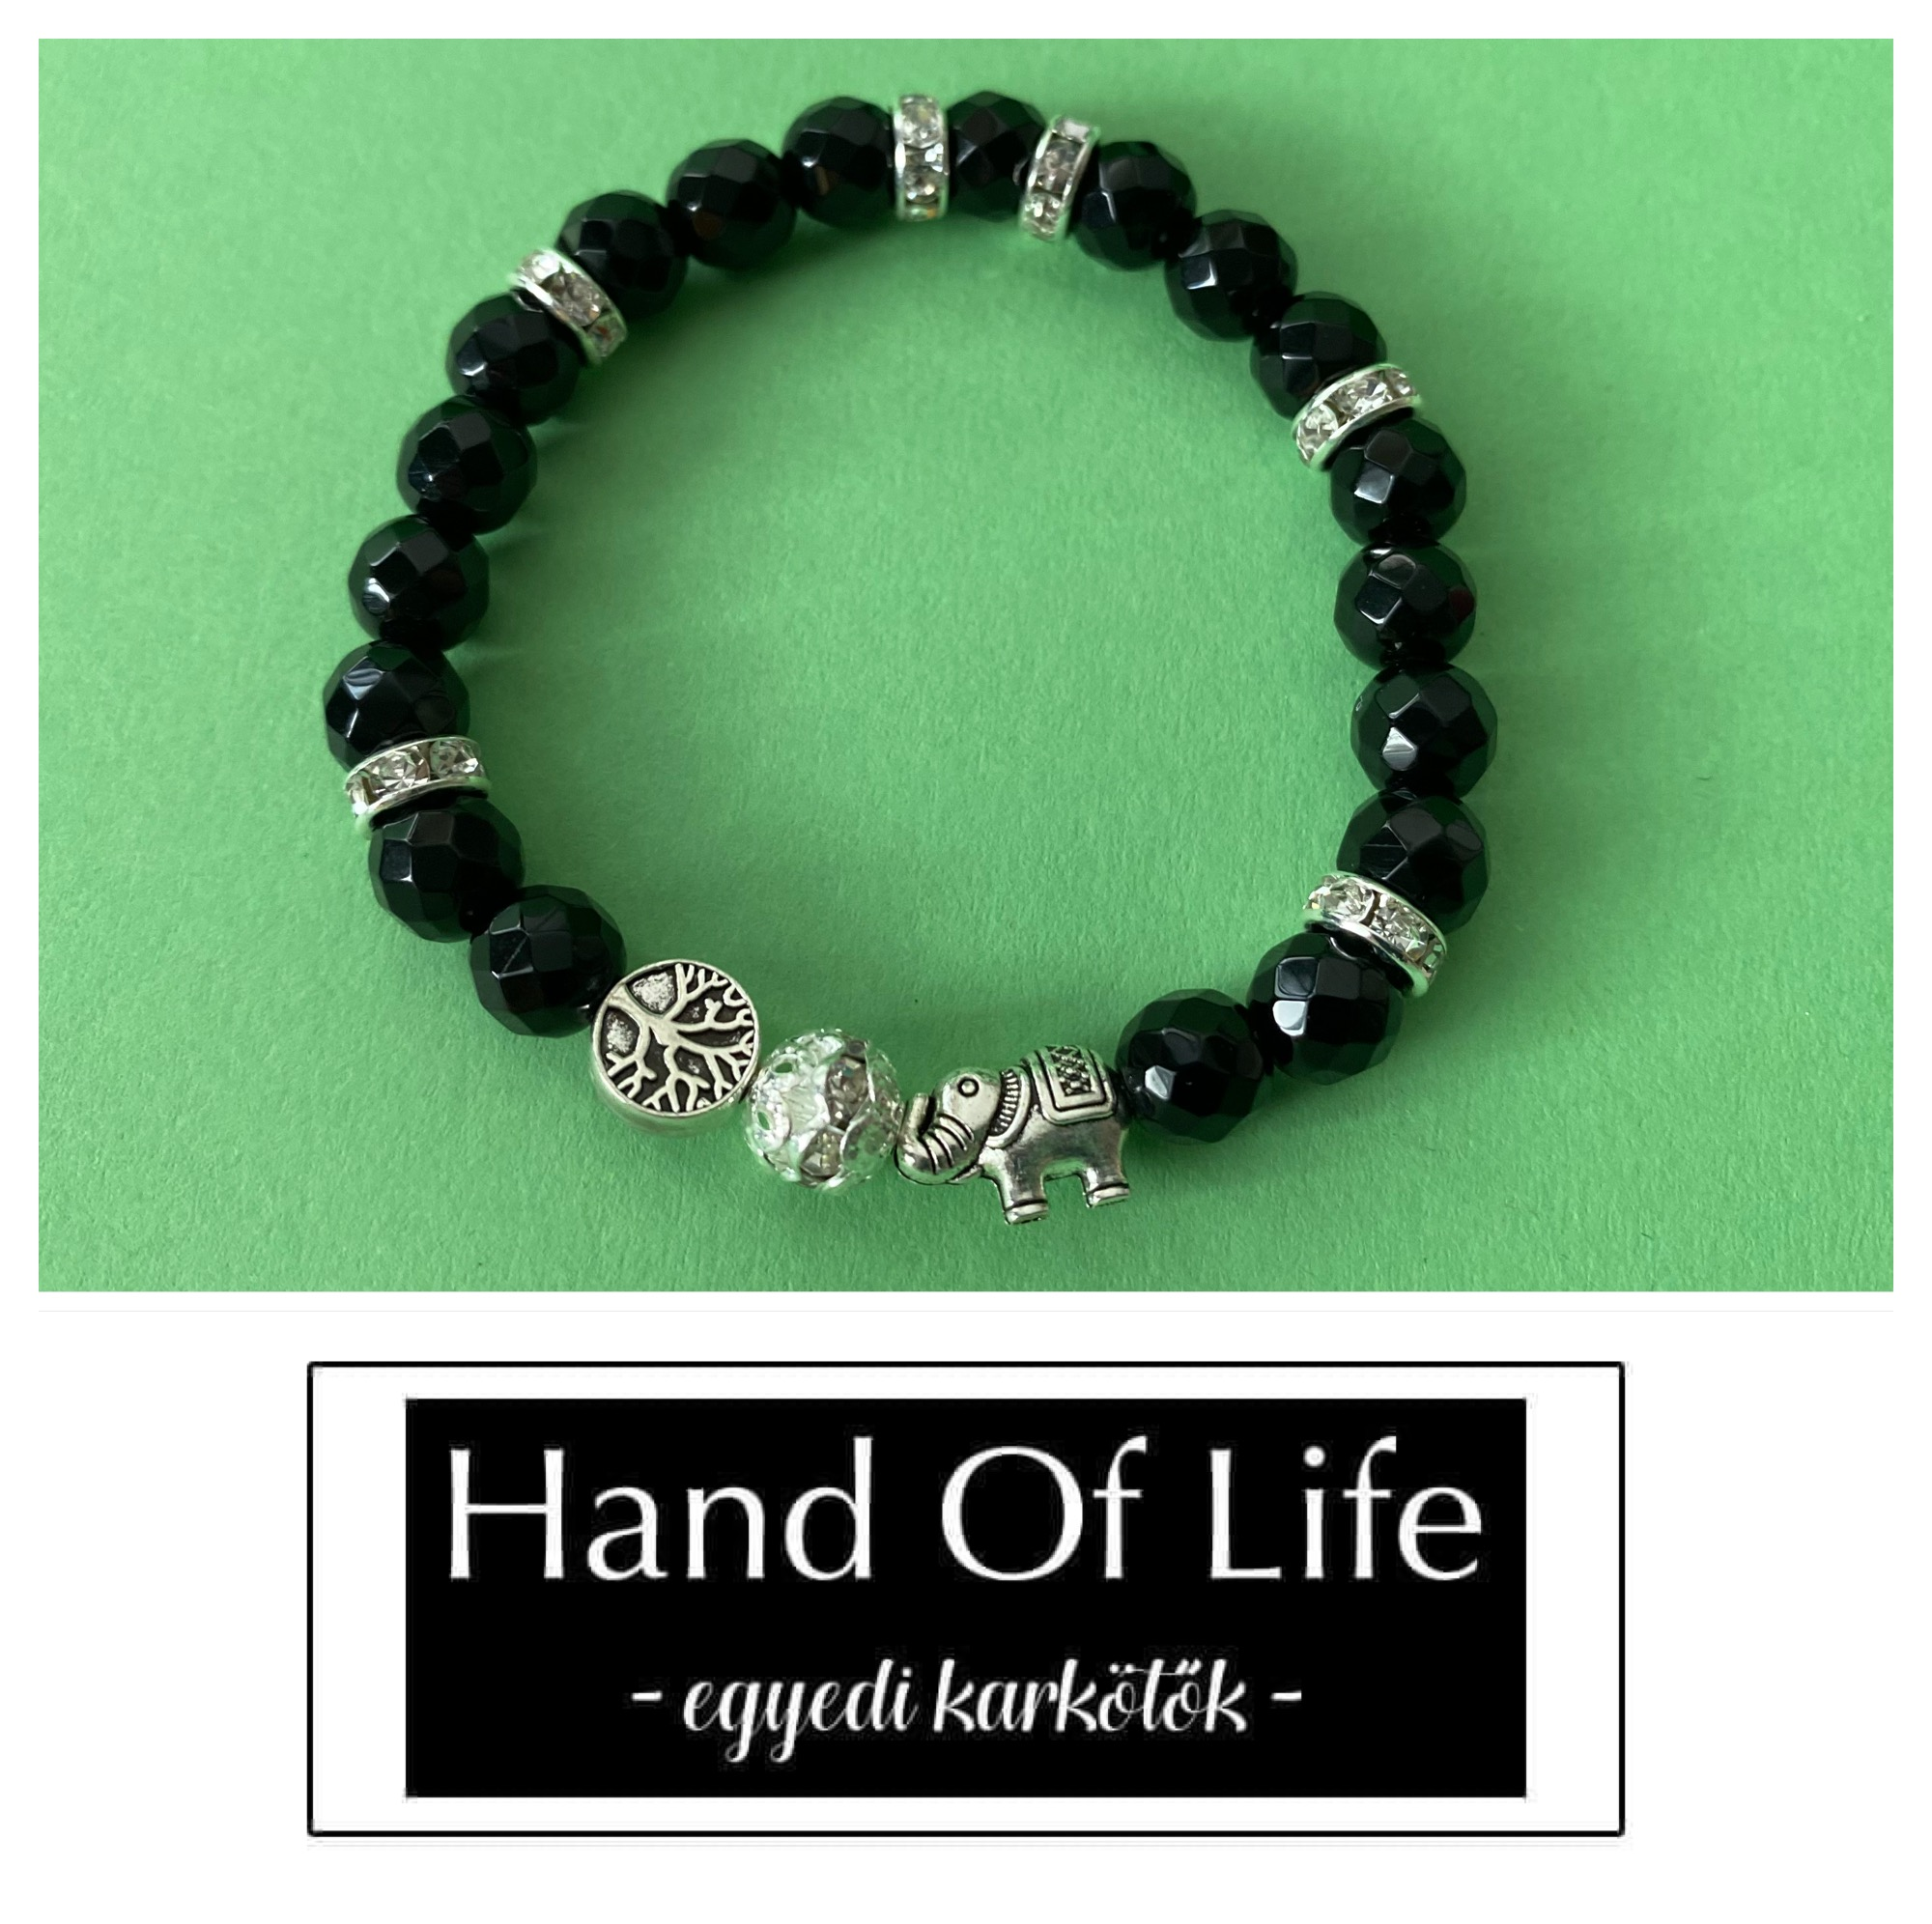 202109-250 Hand Of life